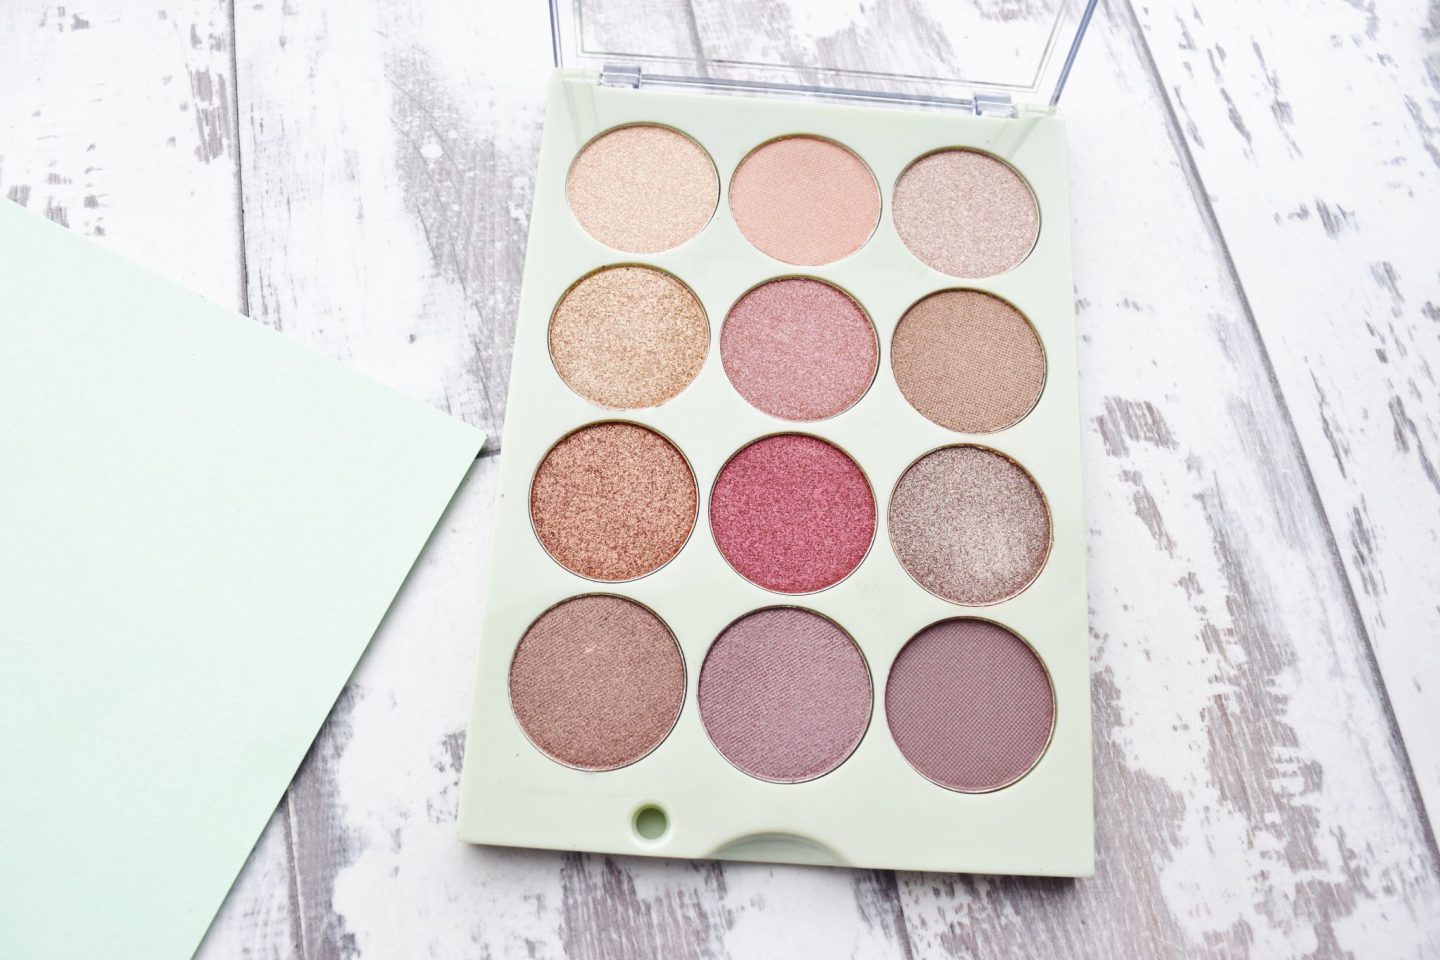 Pixi Beauty Eye Reflections Shadow Palette